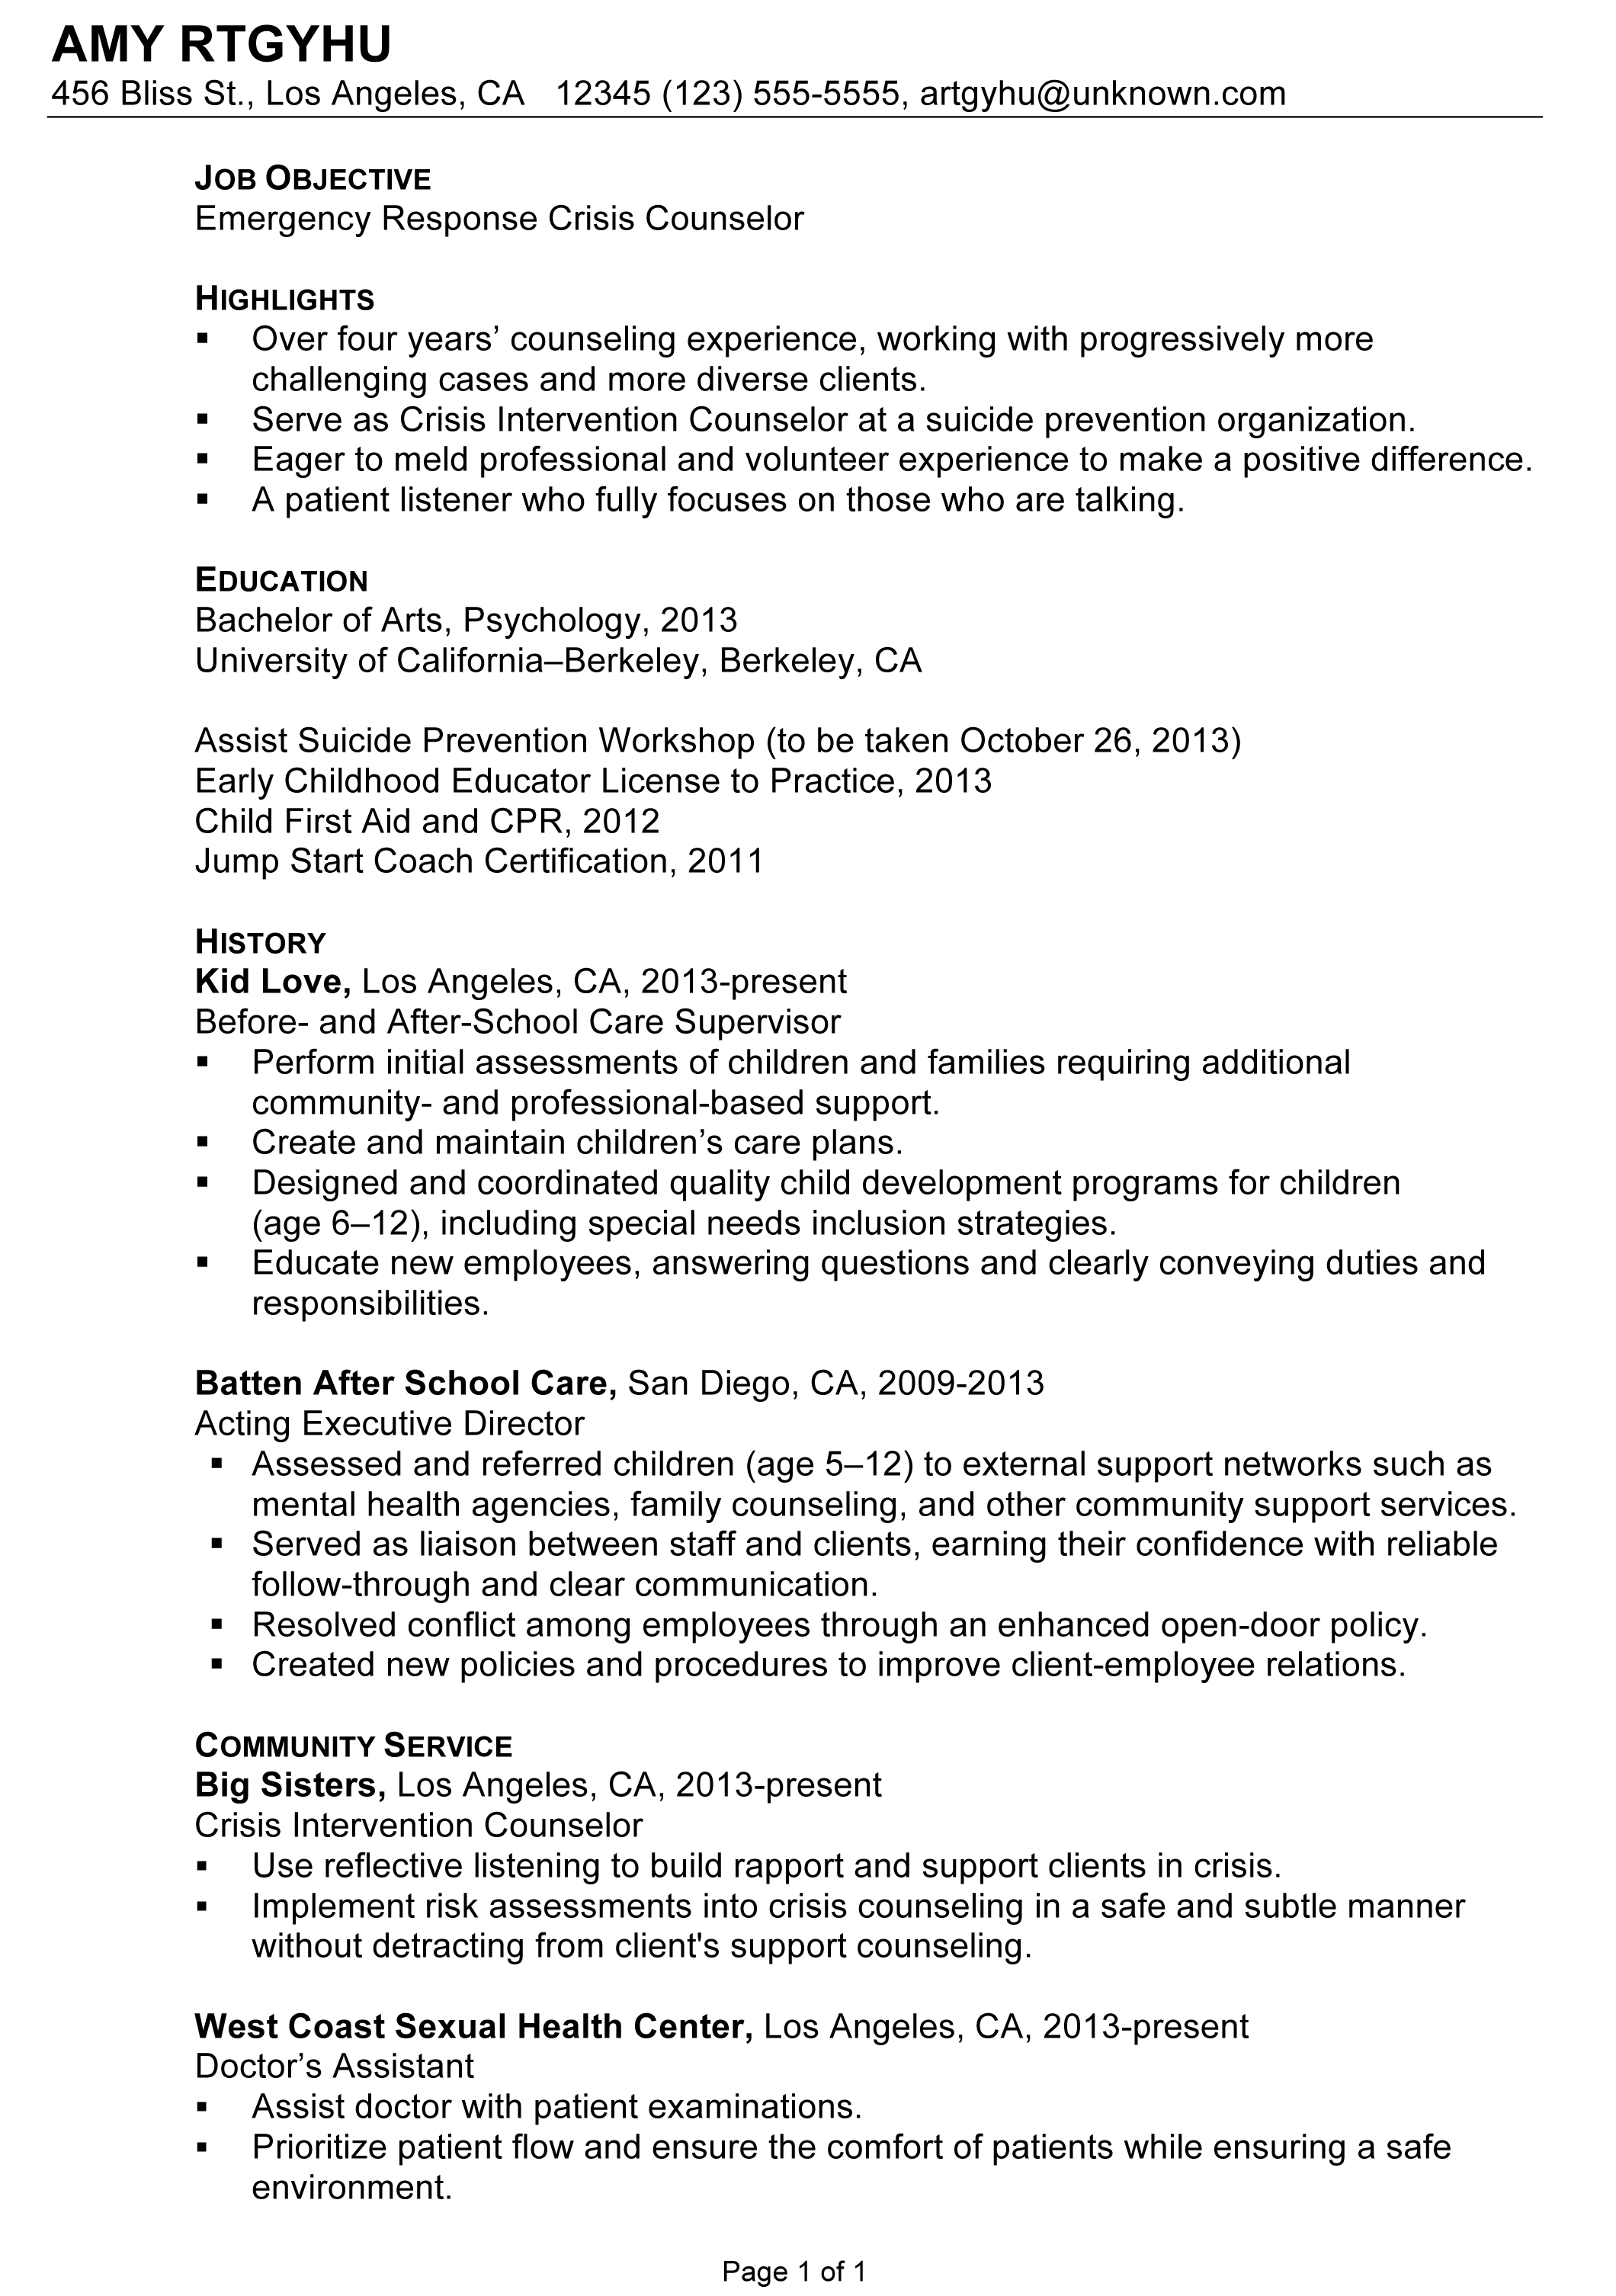 Custom Resume Ghostwriter Website For College Best Assignment